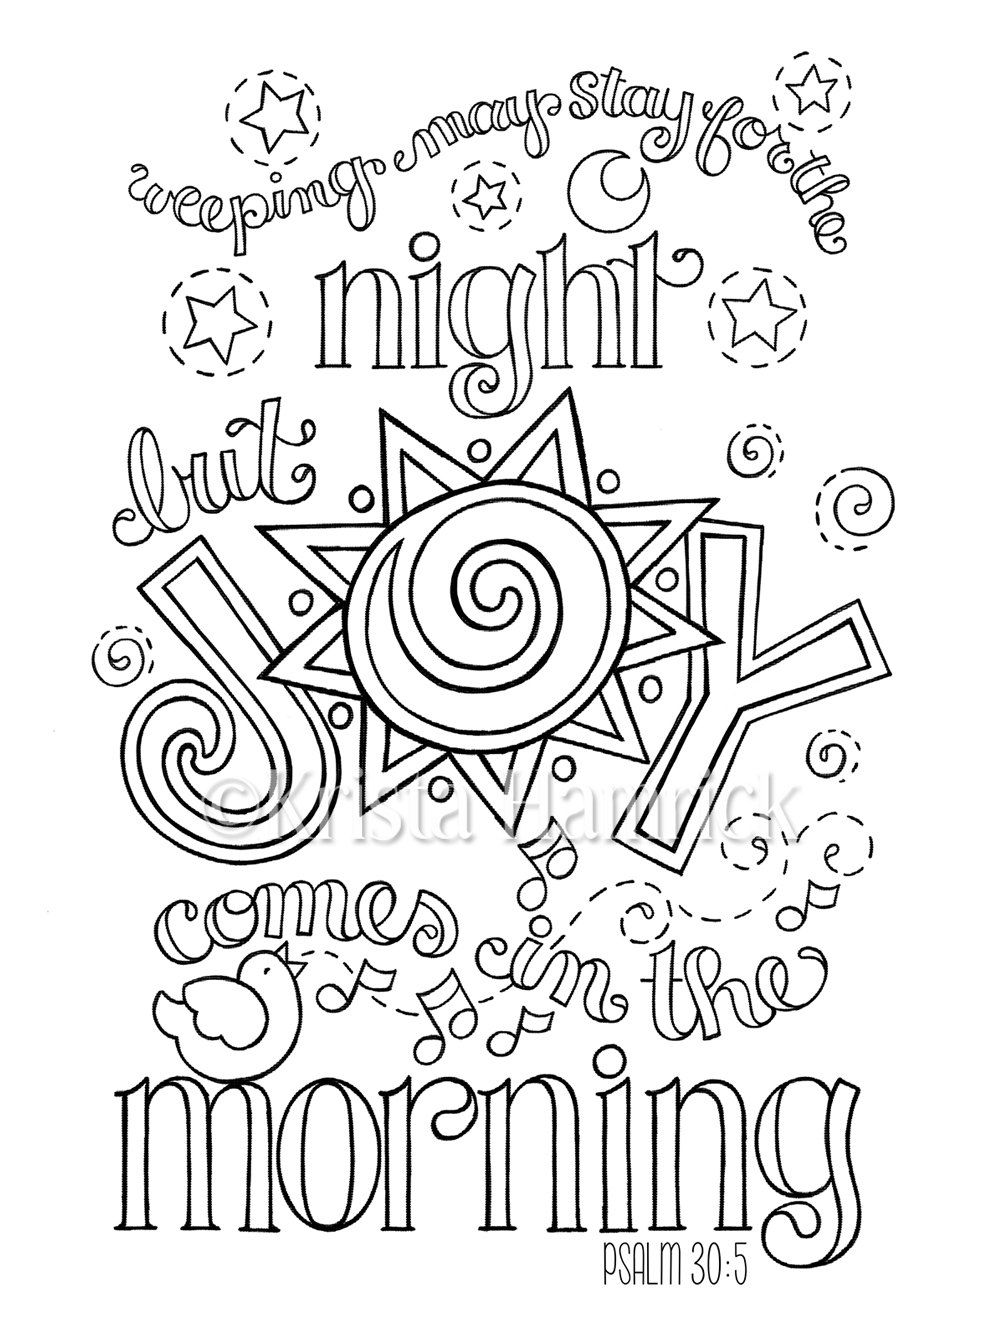 Joy Comes in the Morning coloring page / Two sizes